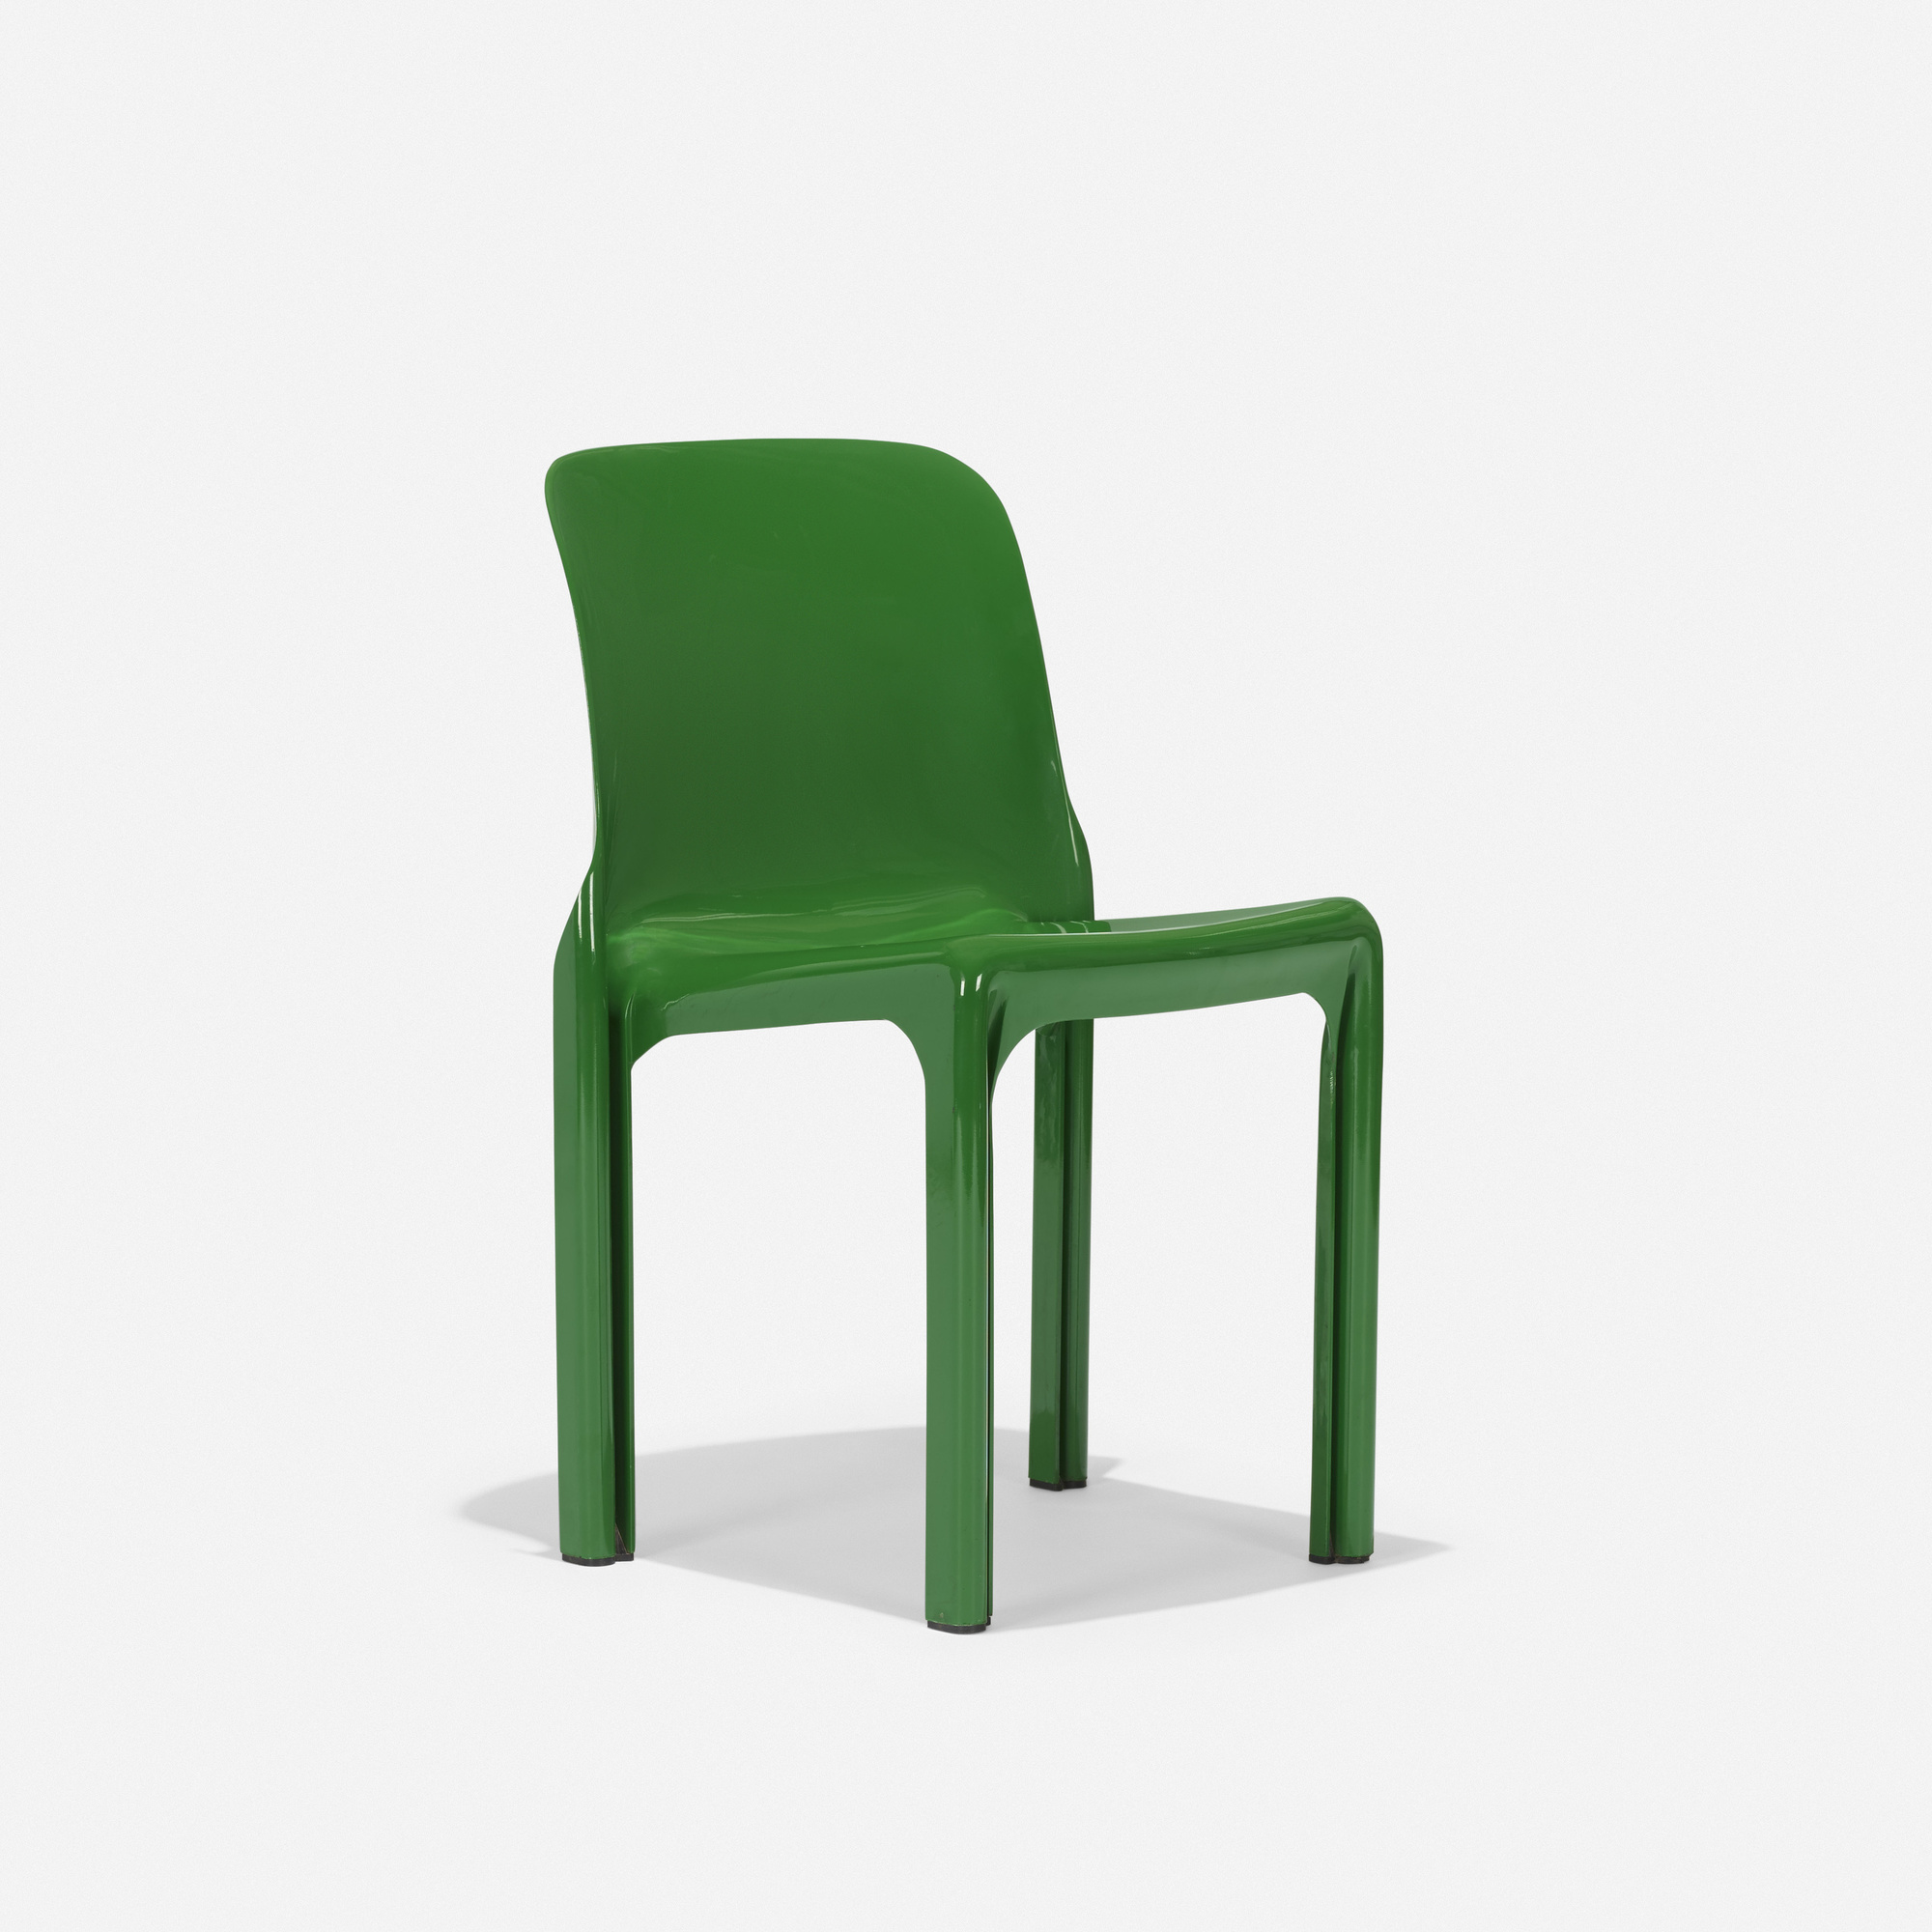 107: Vico Magistretti / Selene Stacking chair (1 of 4)